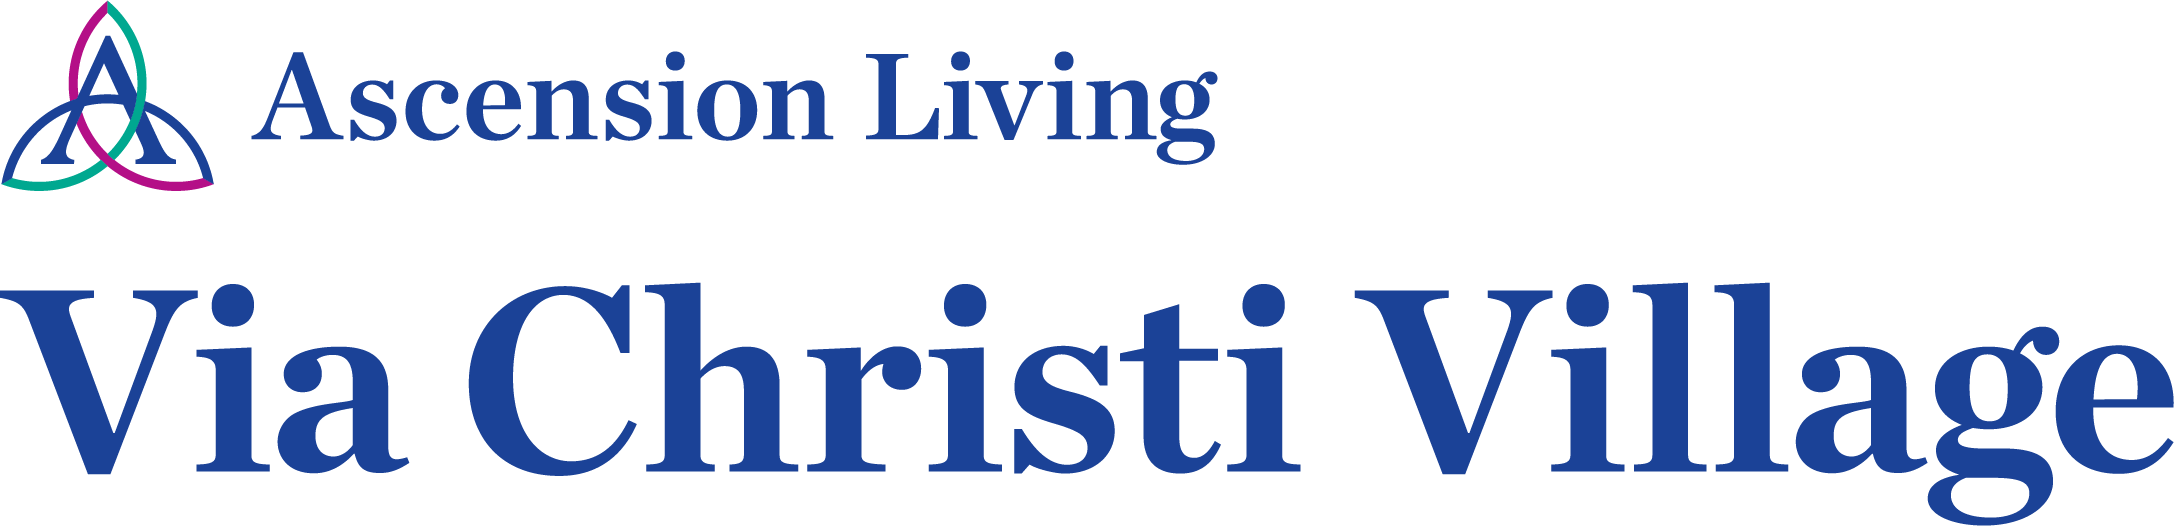 4 Ascension Living Via Christi Village